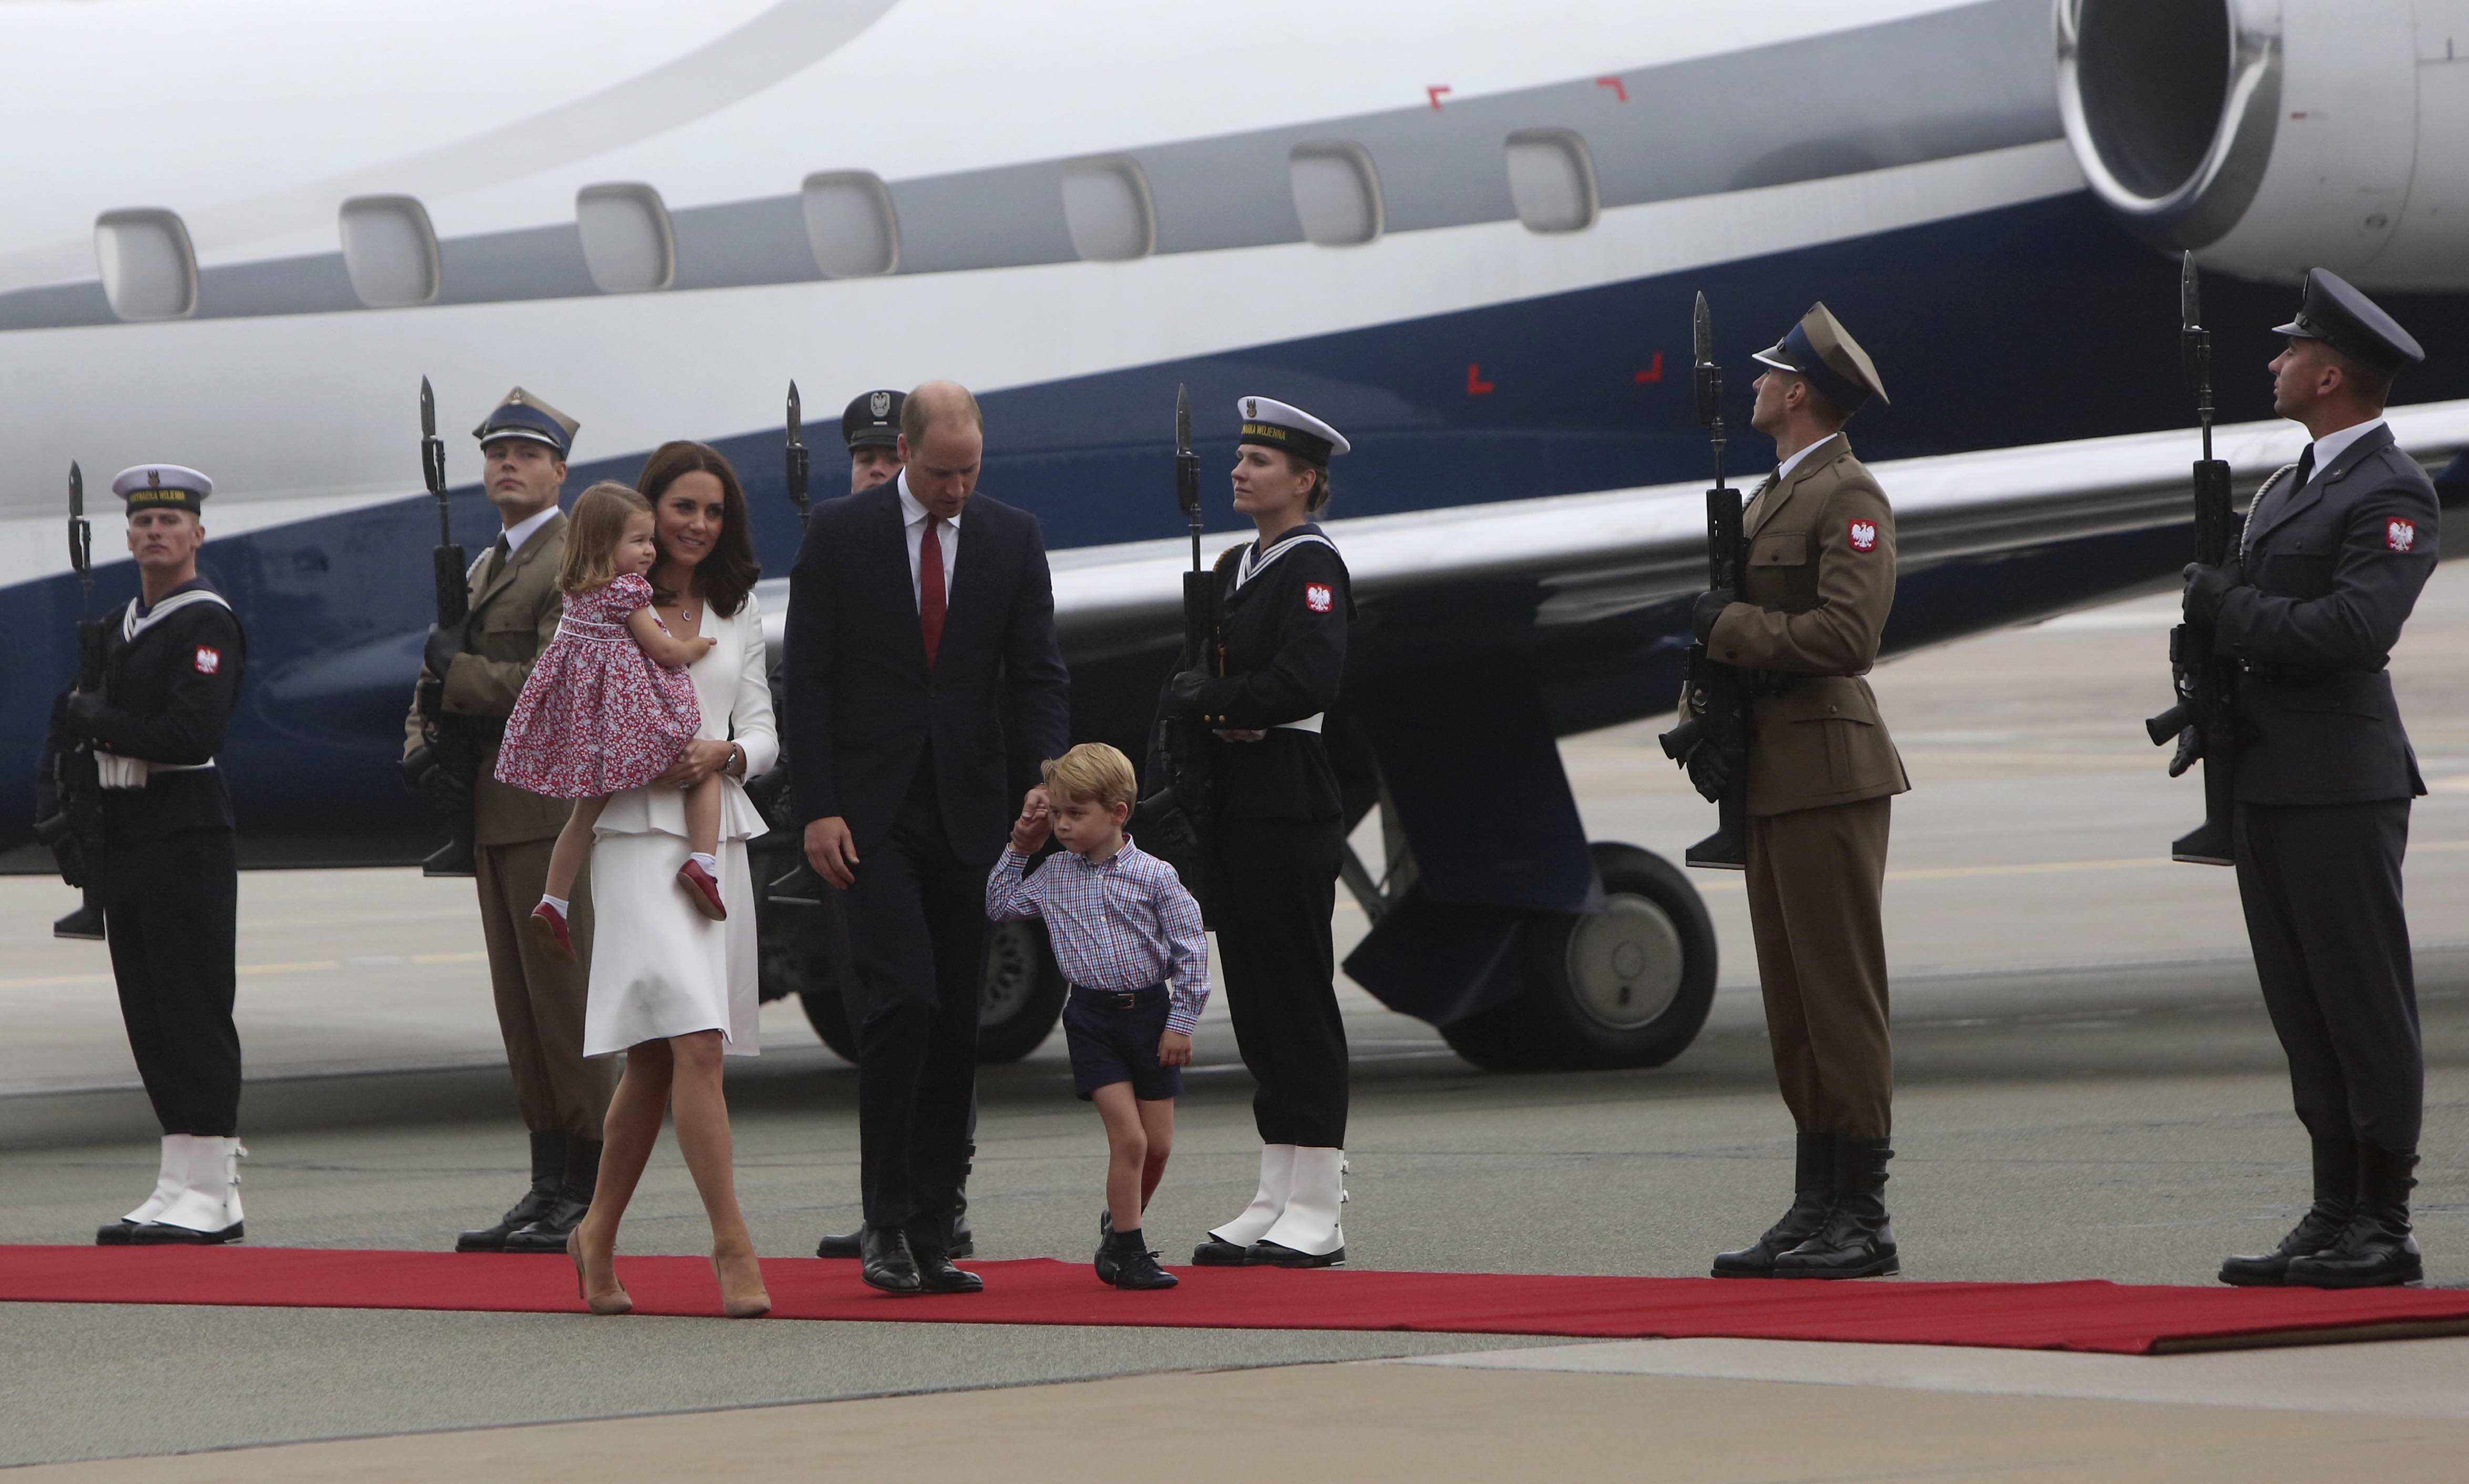 William and Kate to meet Holocaust survivors during tour of Poland